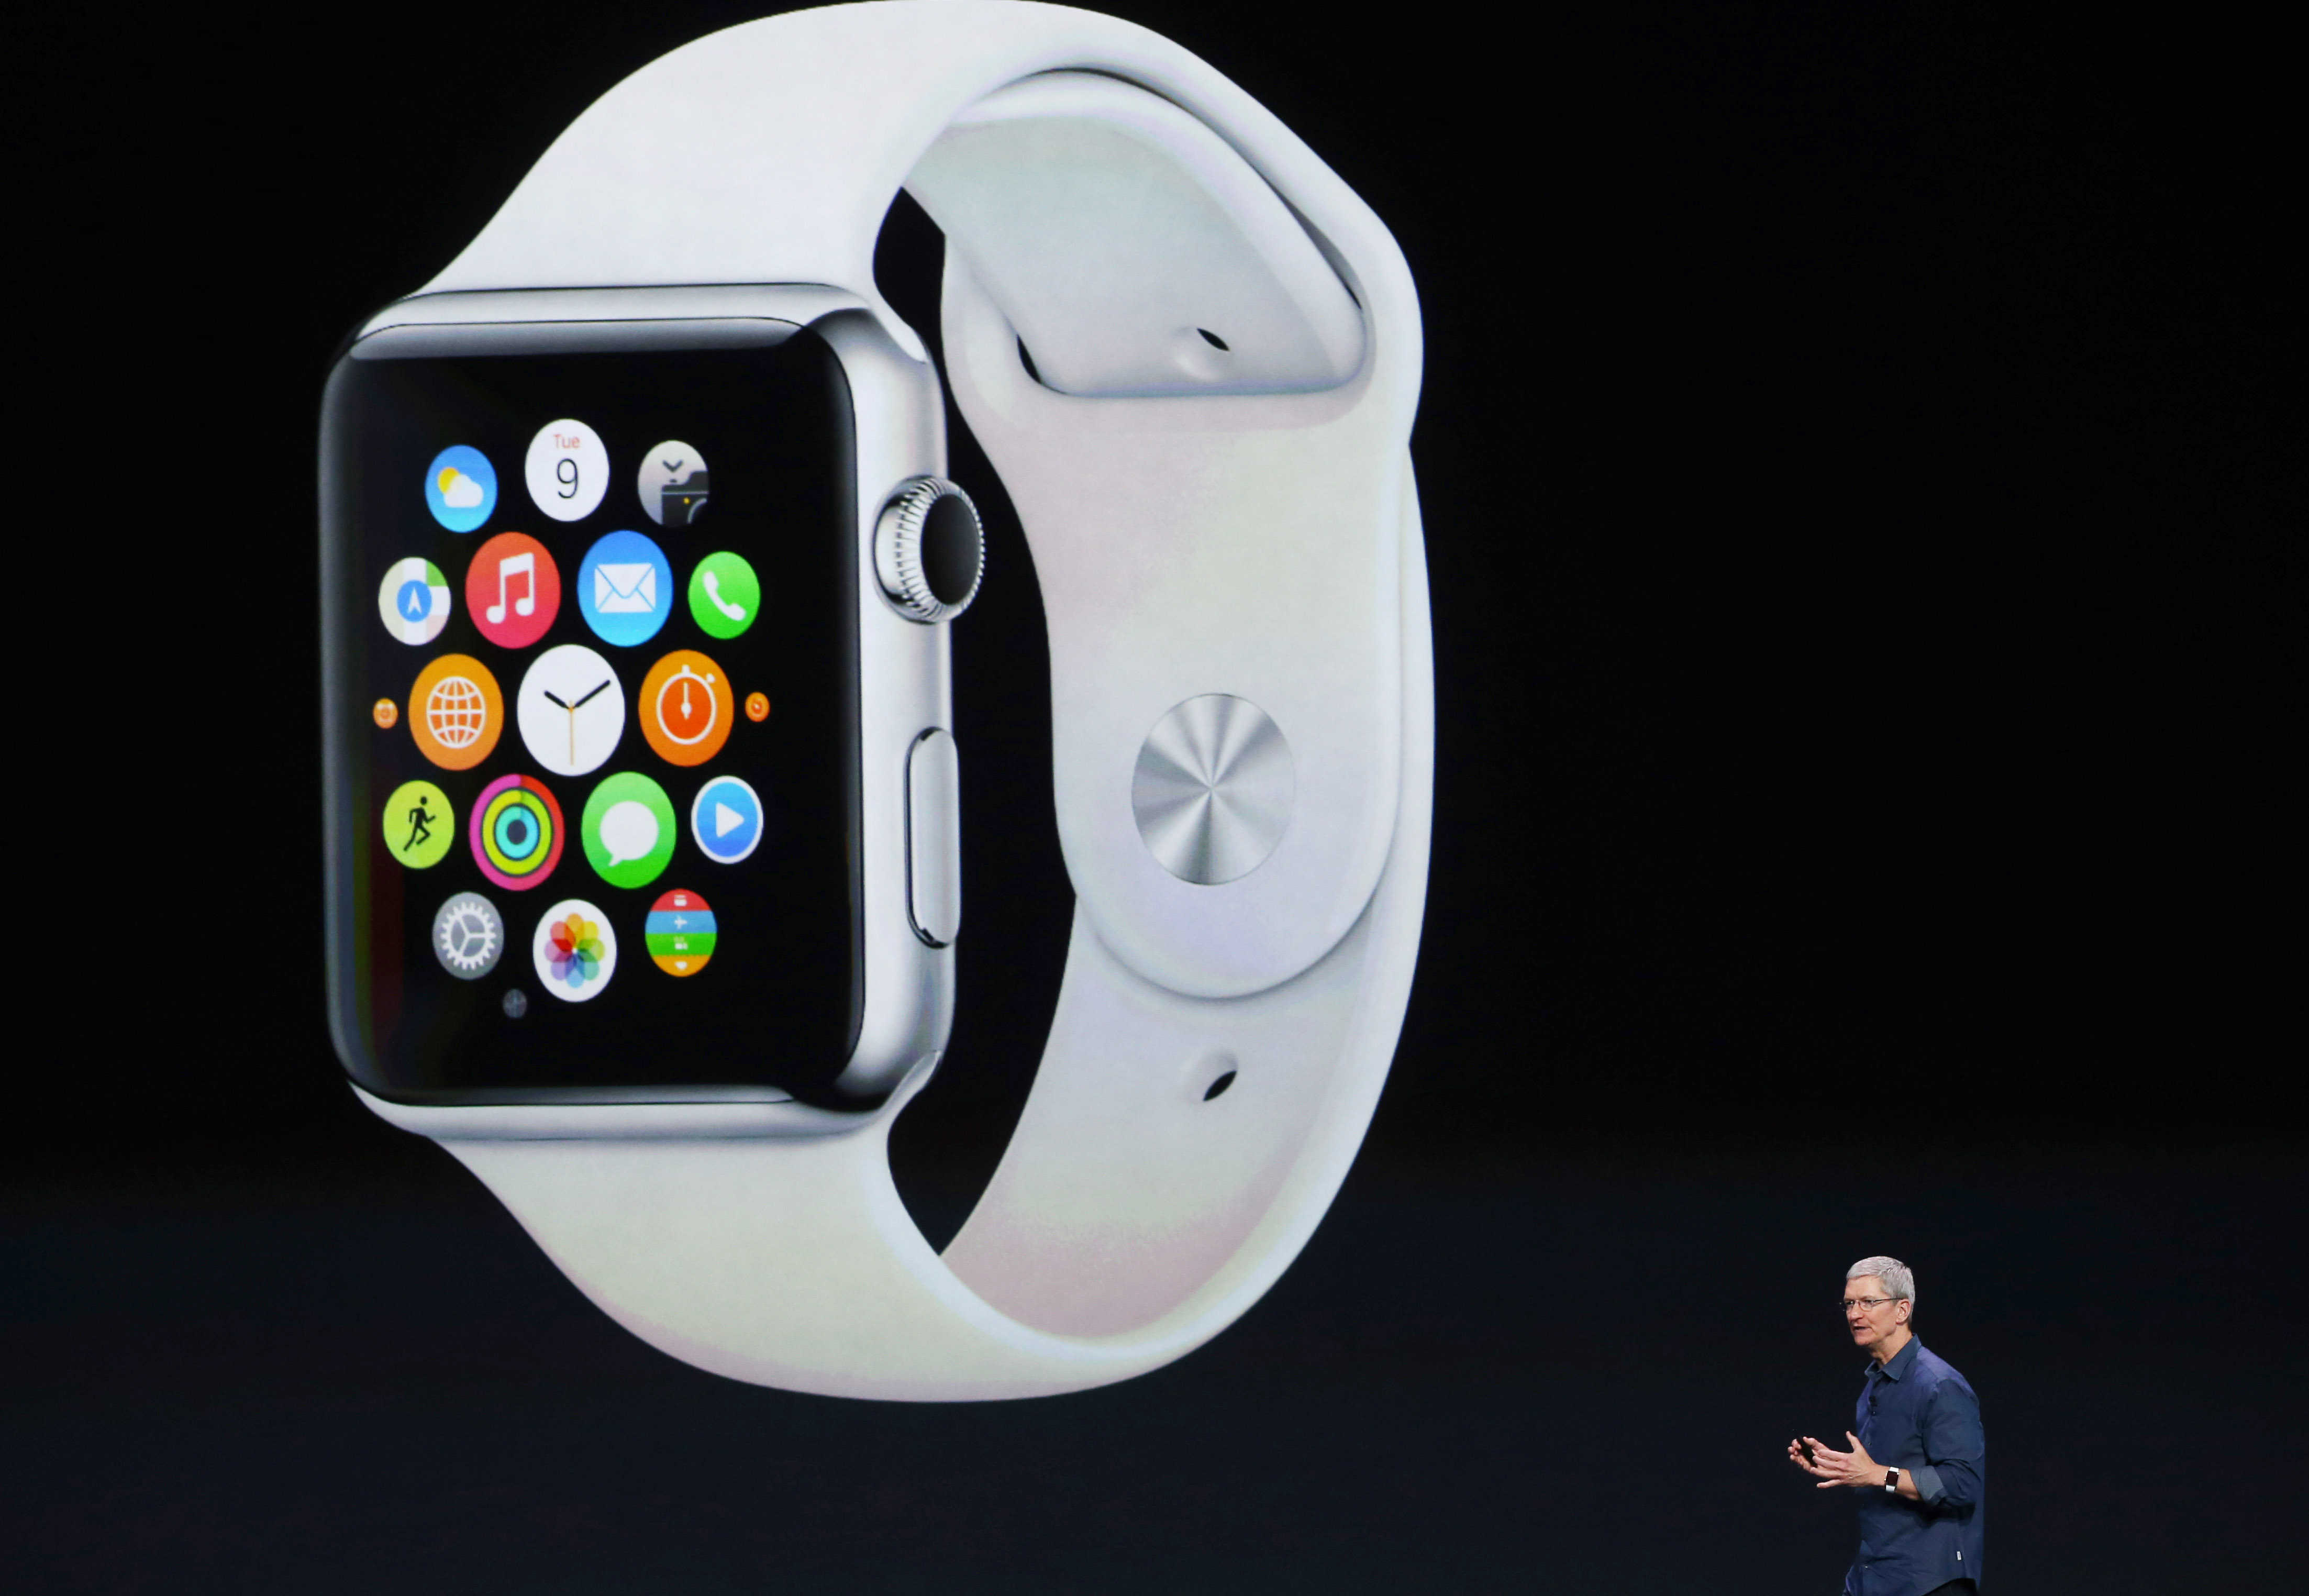 Apple CEO Tim Cook announces the Apple Watch at the Flint Center for the Performing Arts on September 9, 2014 in Cupertino, California.